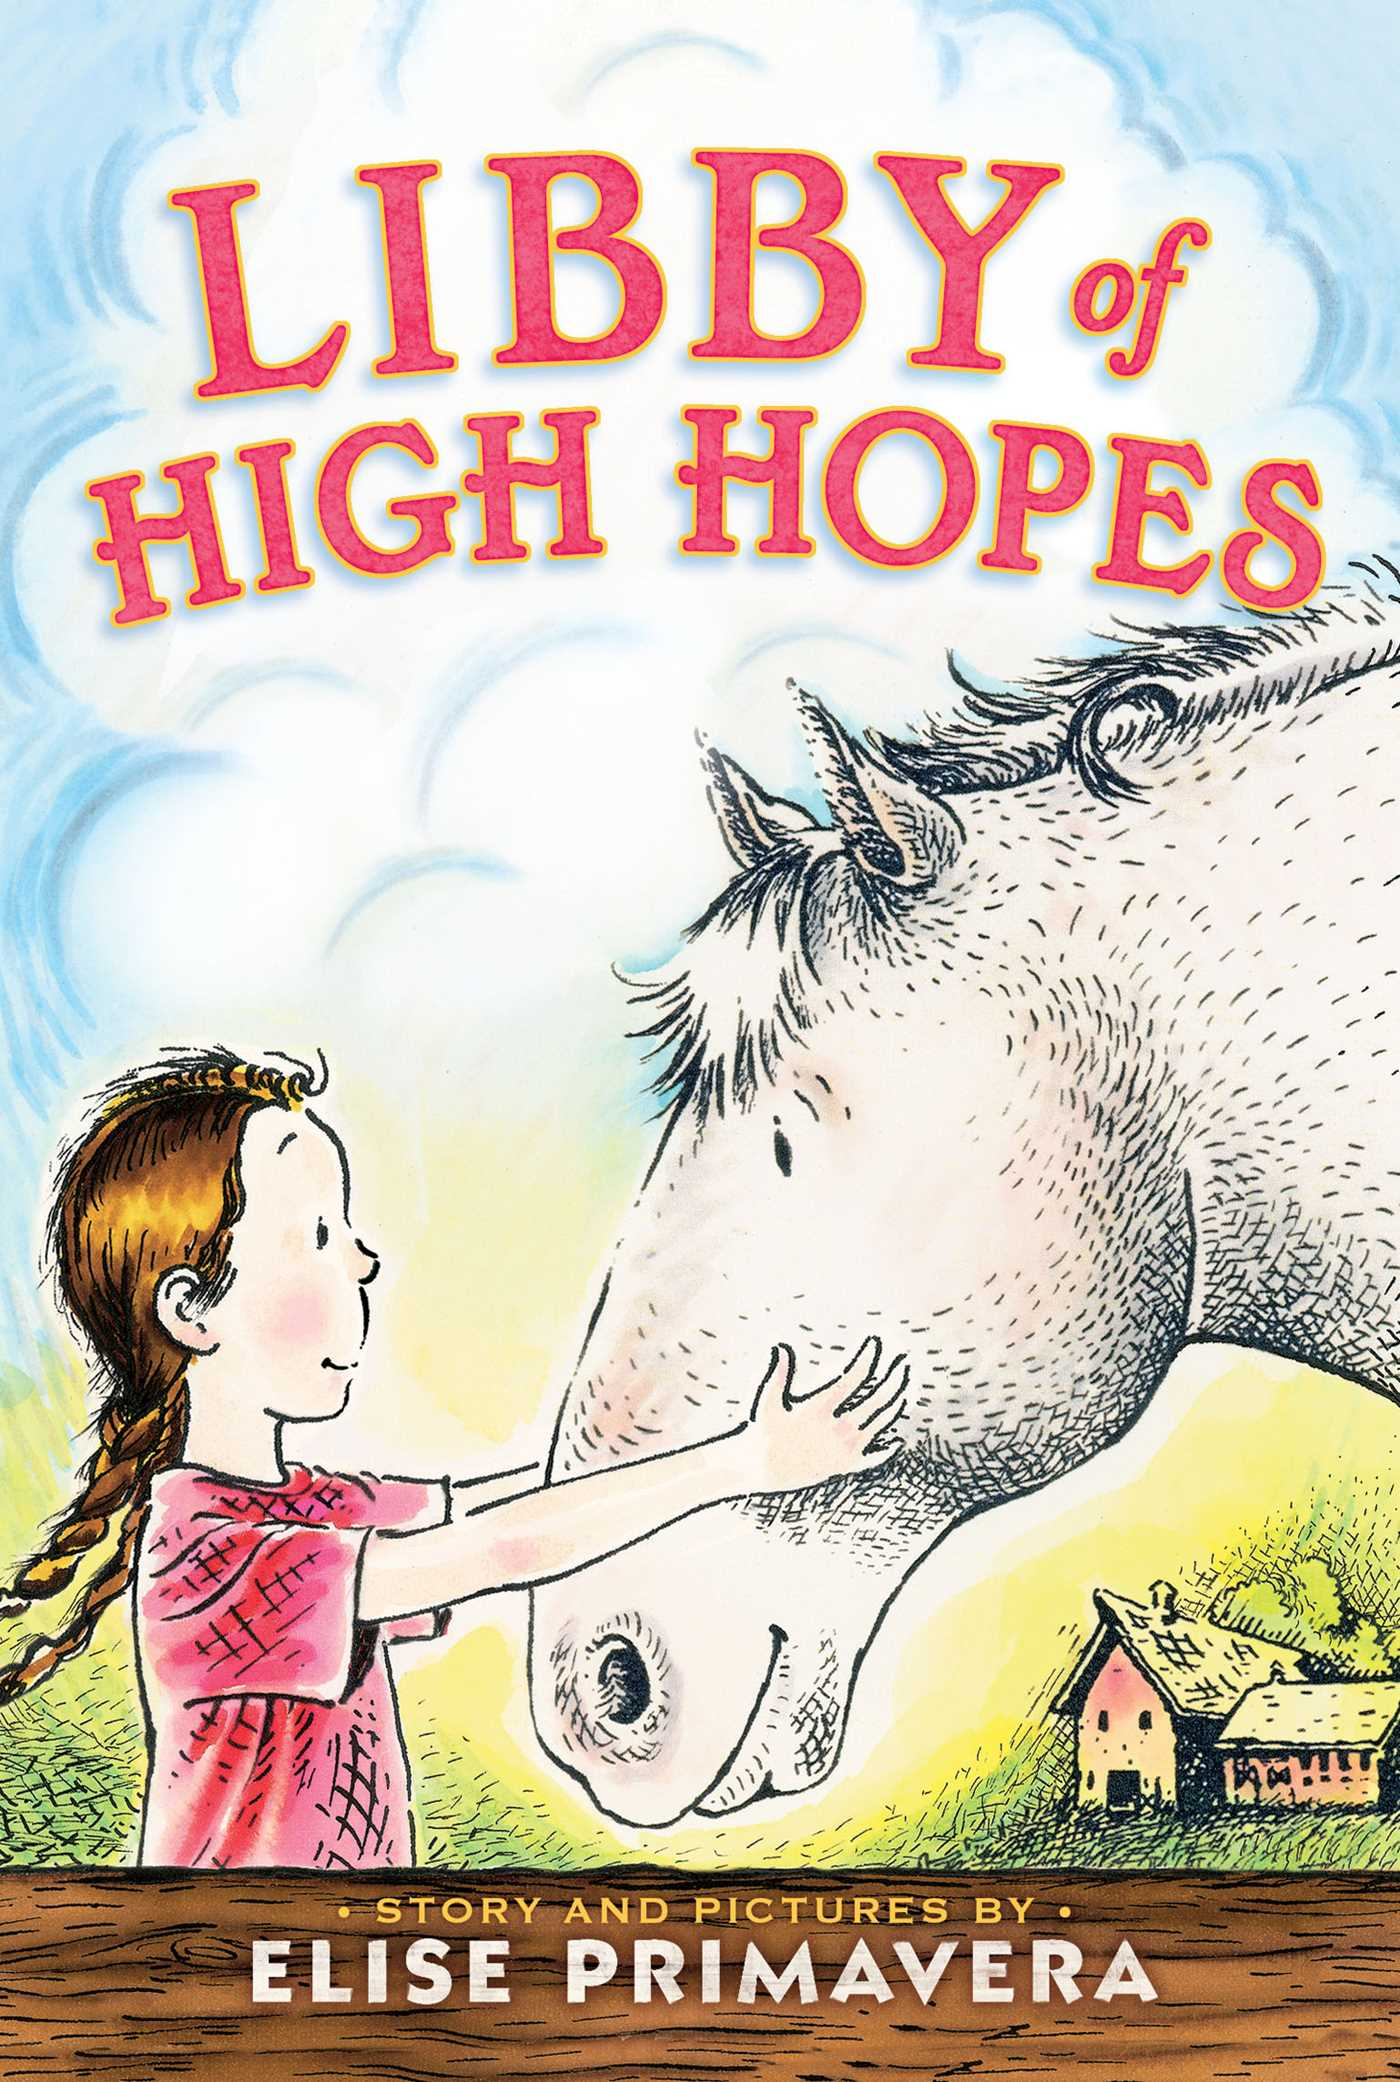 Libby of high hopes 9781442452190 hr